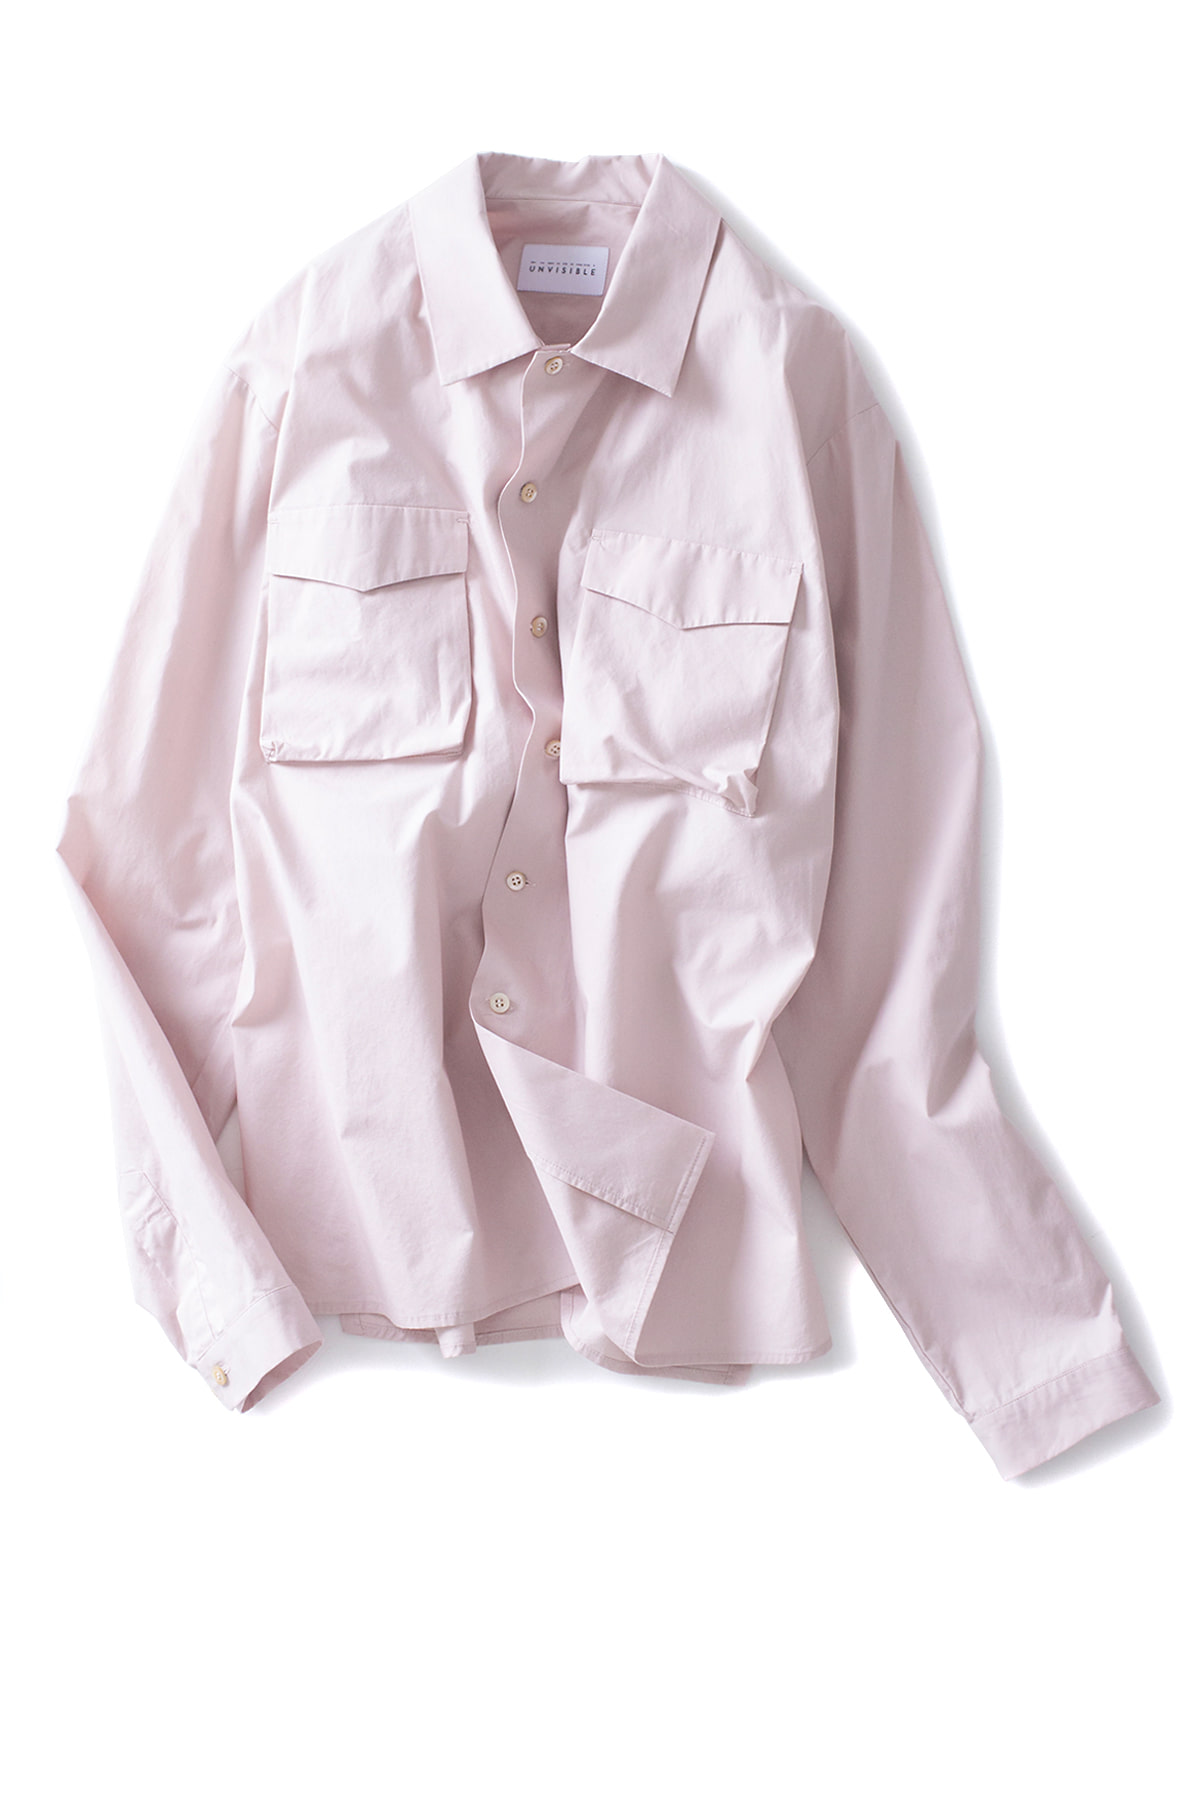 UNVISIBLE : Sunday Shirt (Dust Pink)